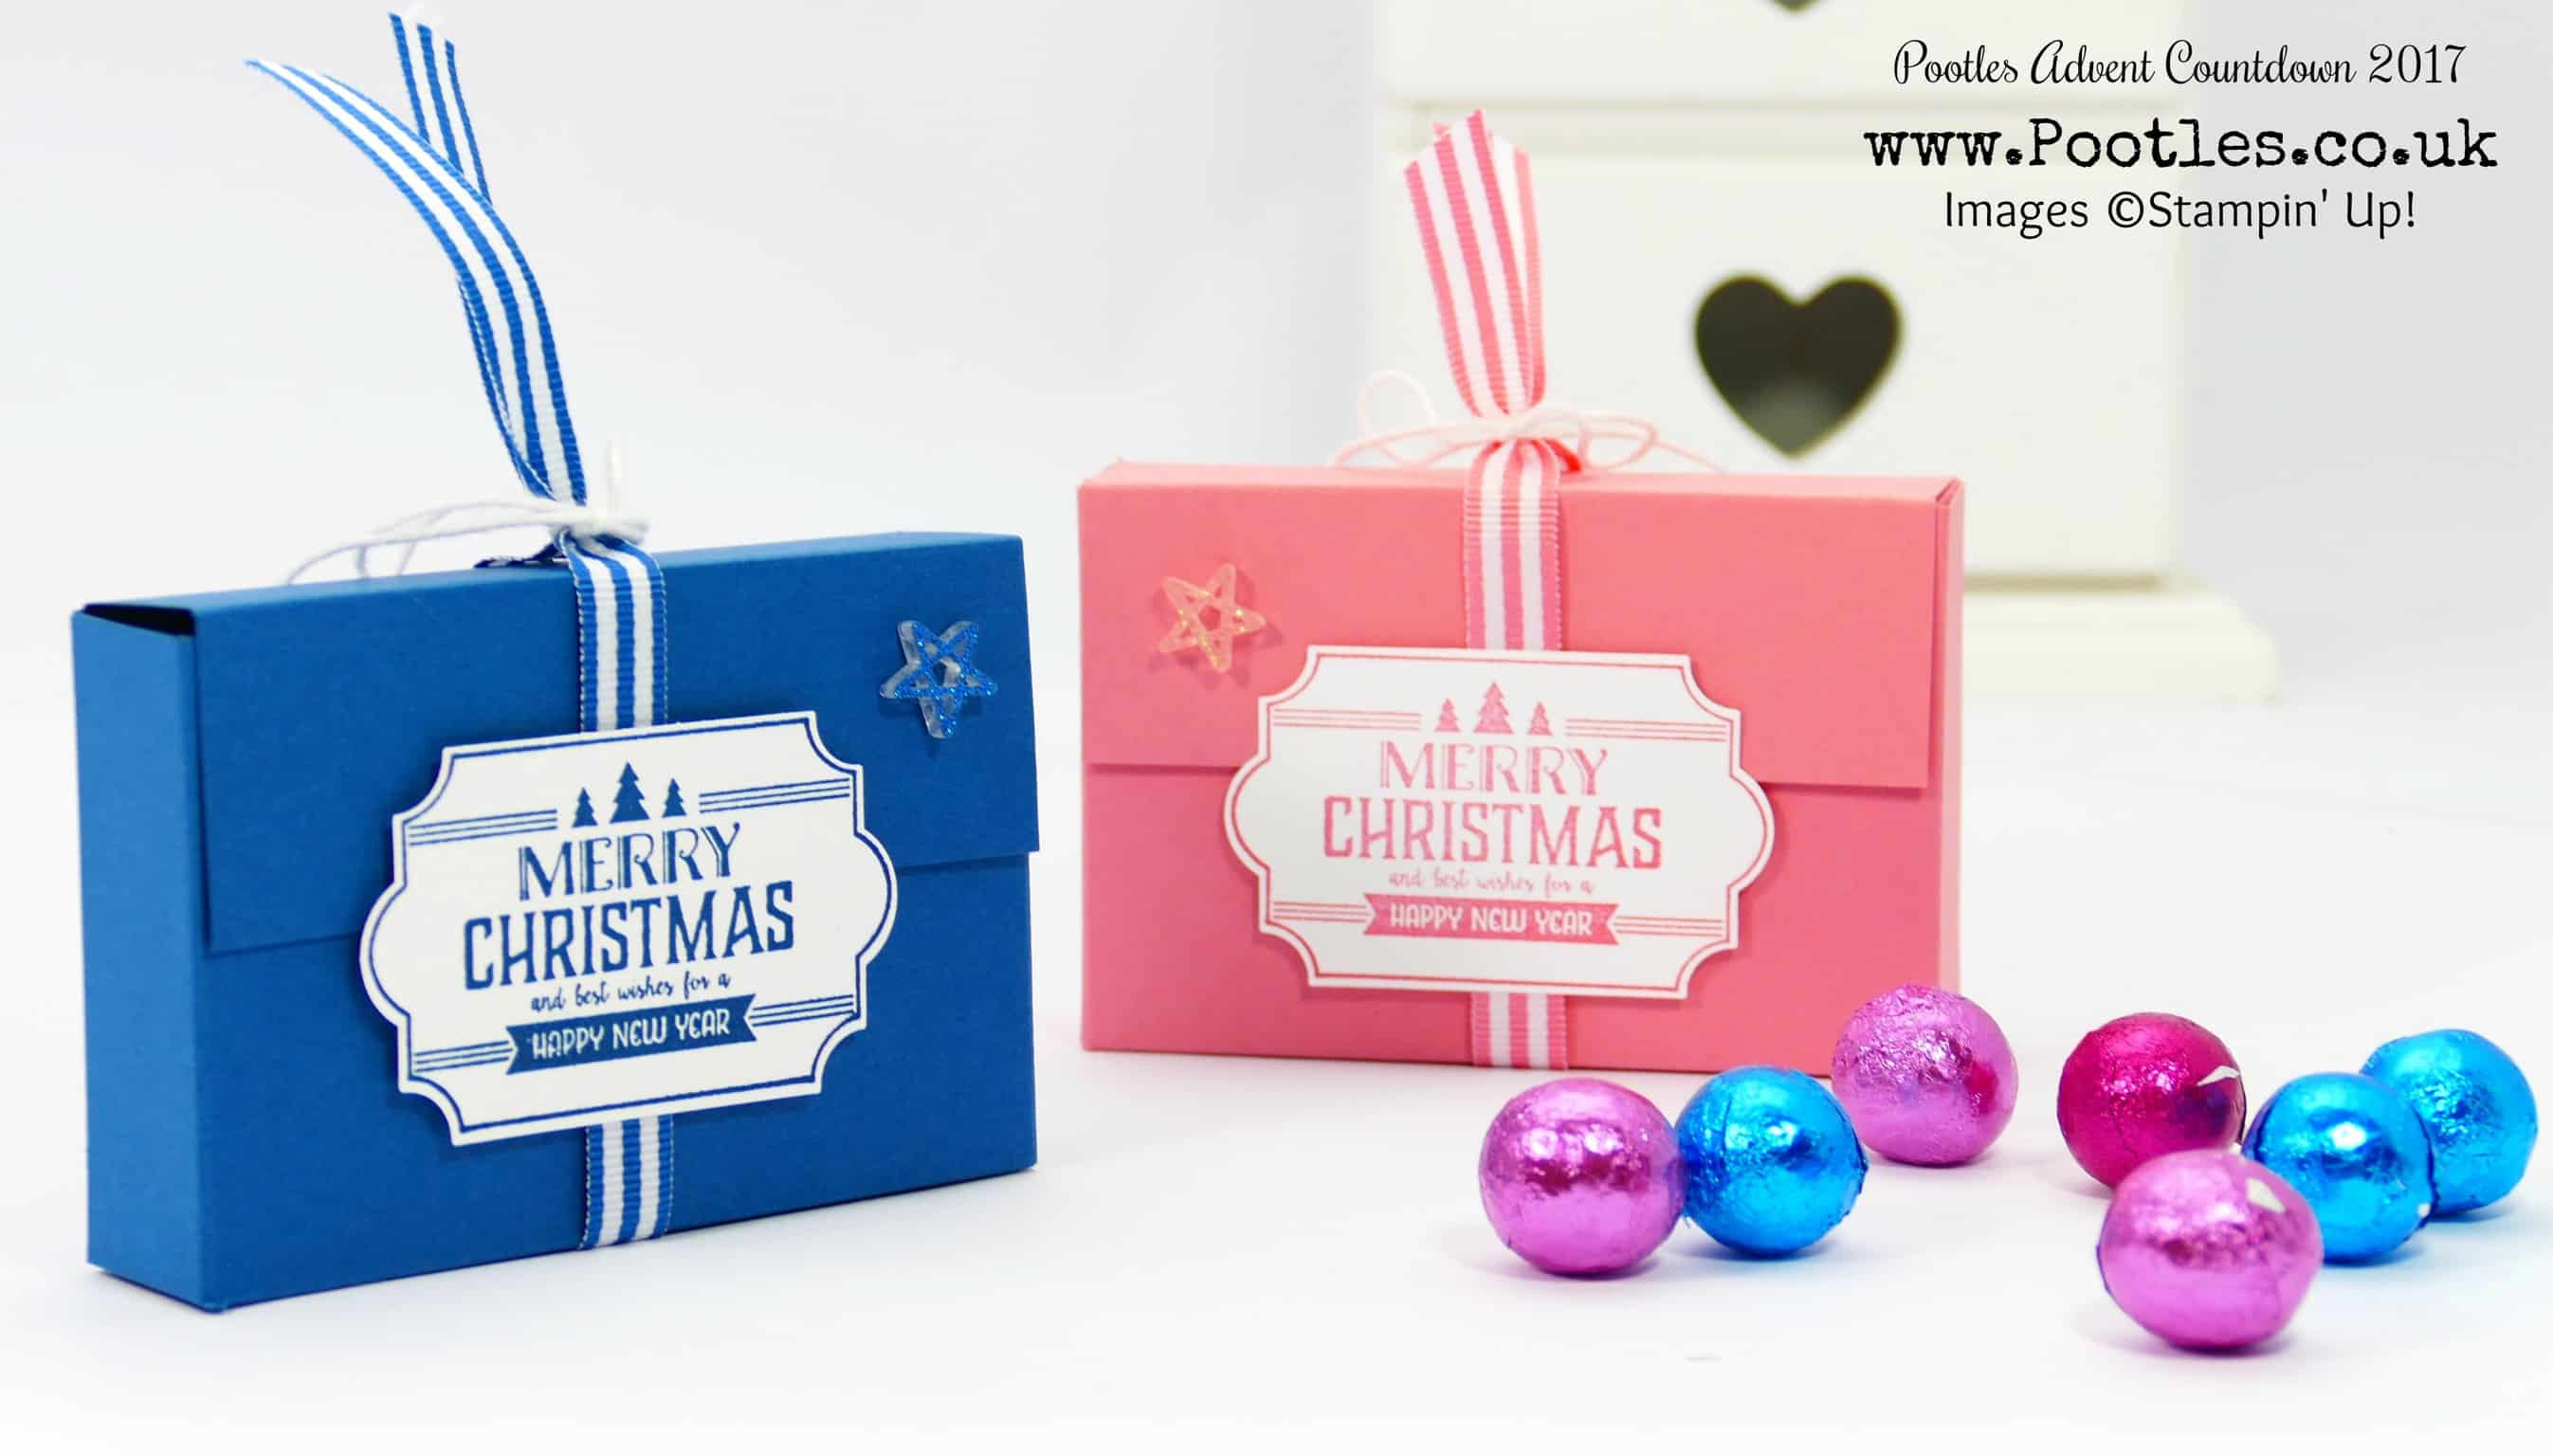 Pootles Advent Countdown 2017 #14 Adorable Box for Foiled Chocolates